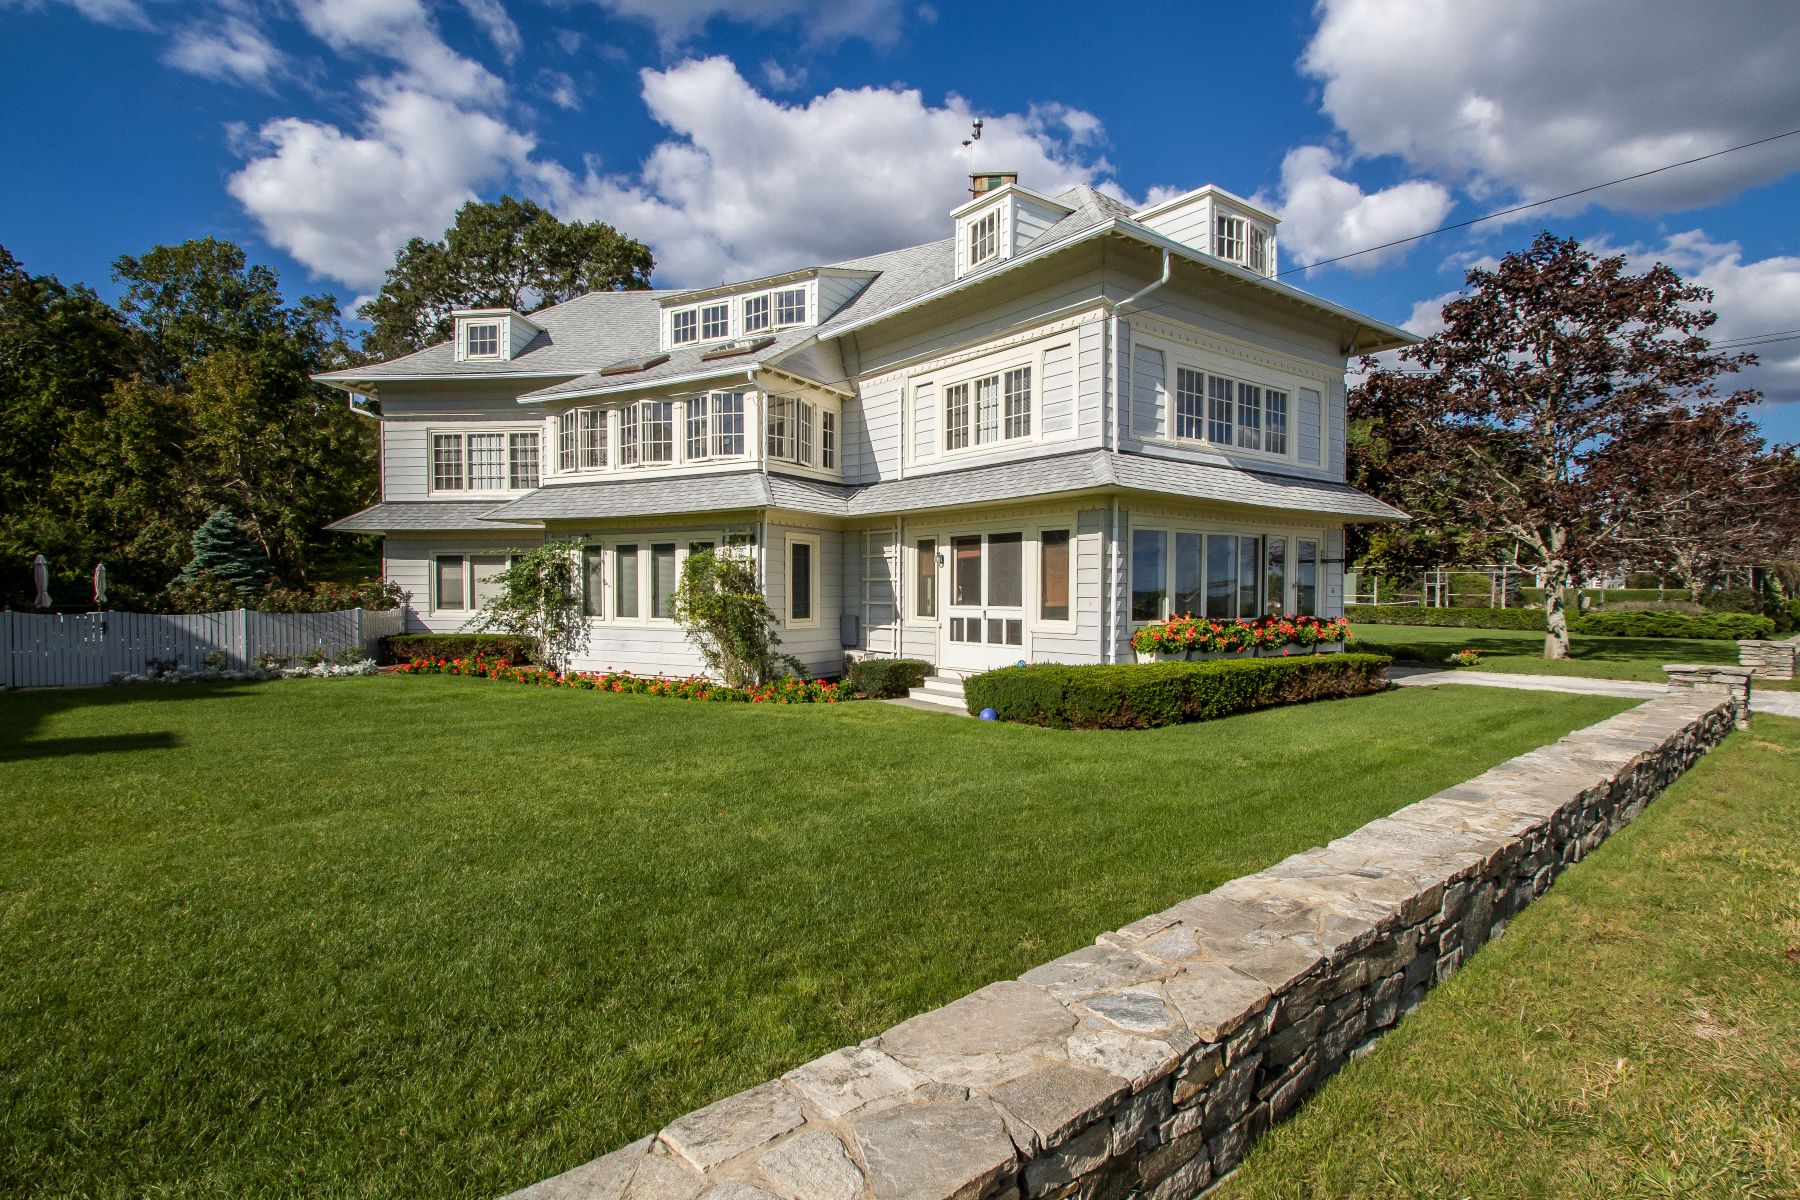 Casa Unifamiliar por un Venta en 61 Middle Beach Road 61 Middle Beach Road Madison, Connecticut 06443 Estados Unidos